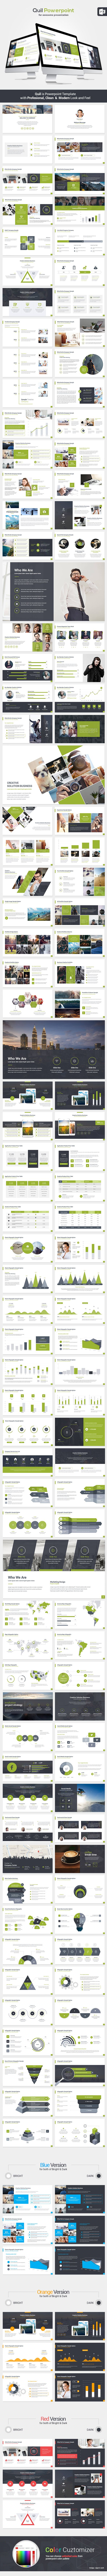 Quil Powerpoint (PowerPoint Templates)